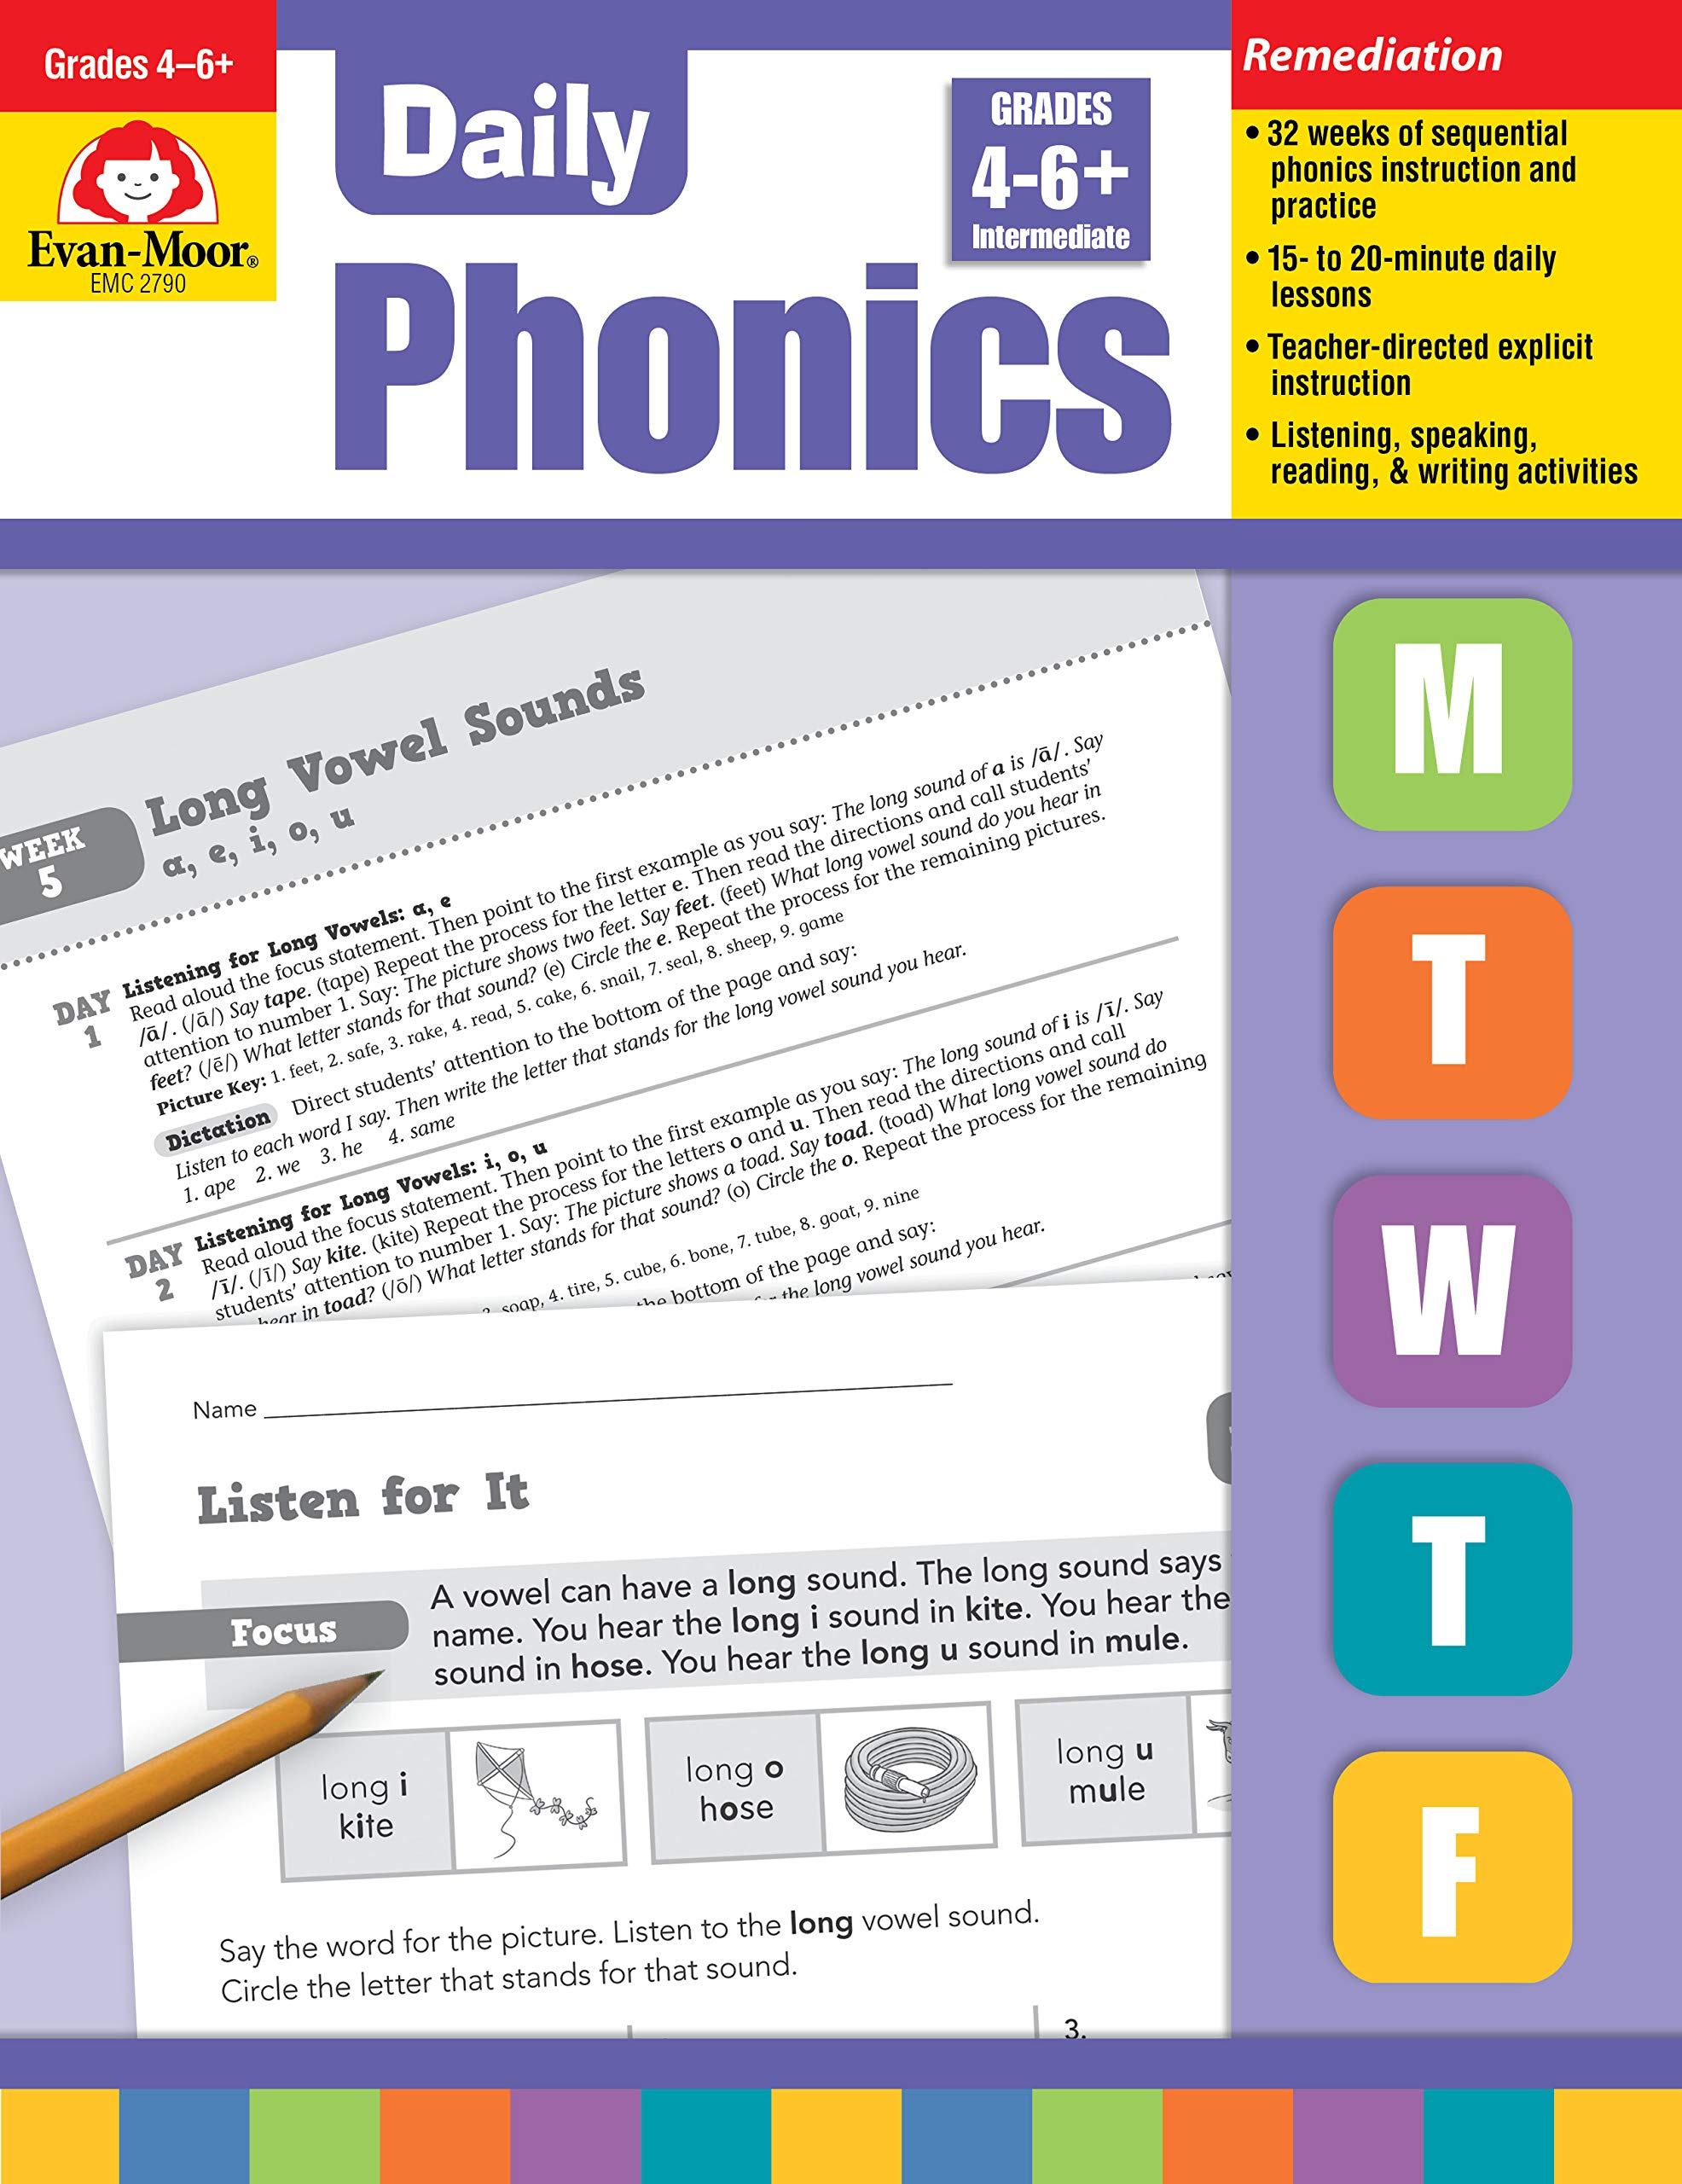 Daily Phonics, Grade 4-6 by EVAN-MOOR